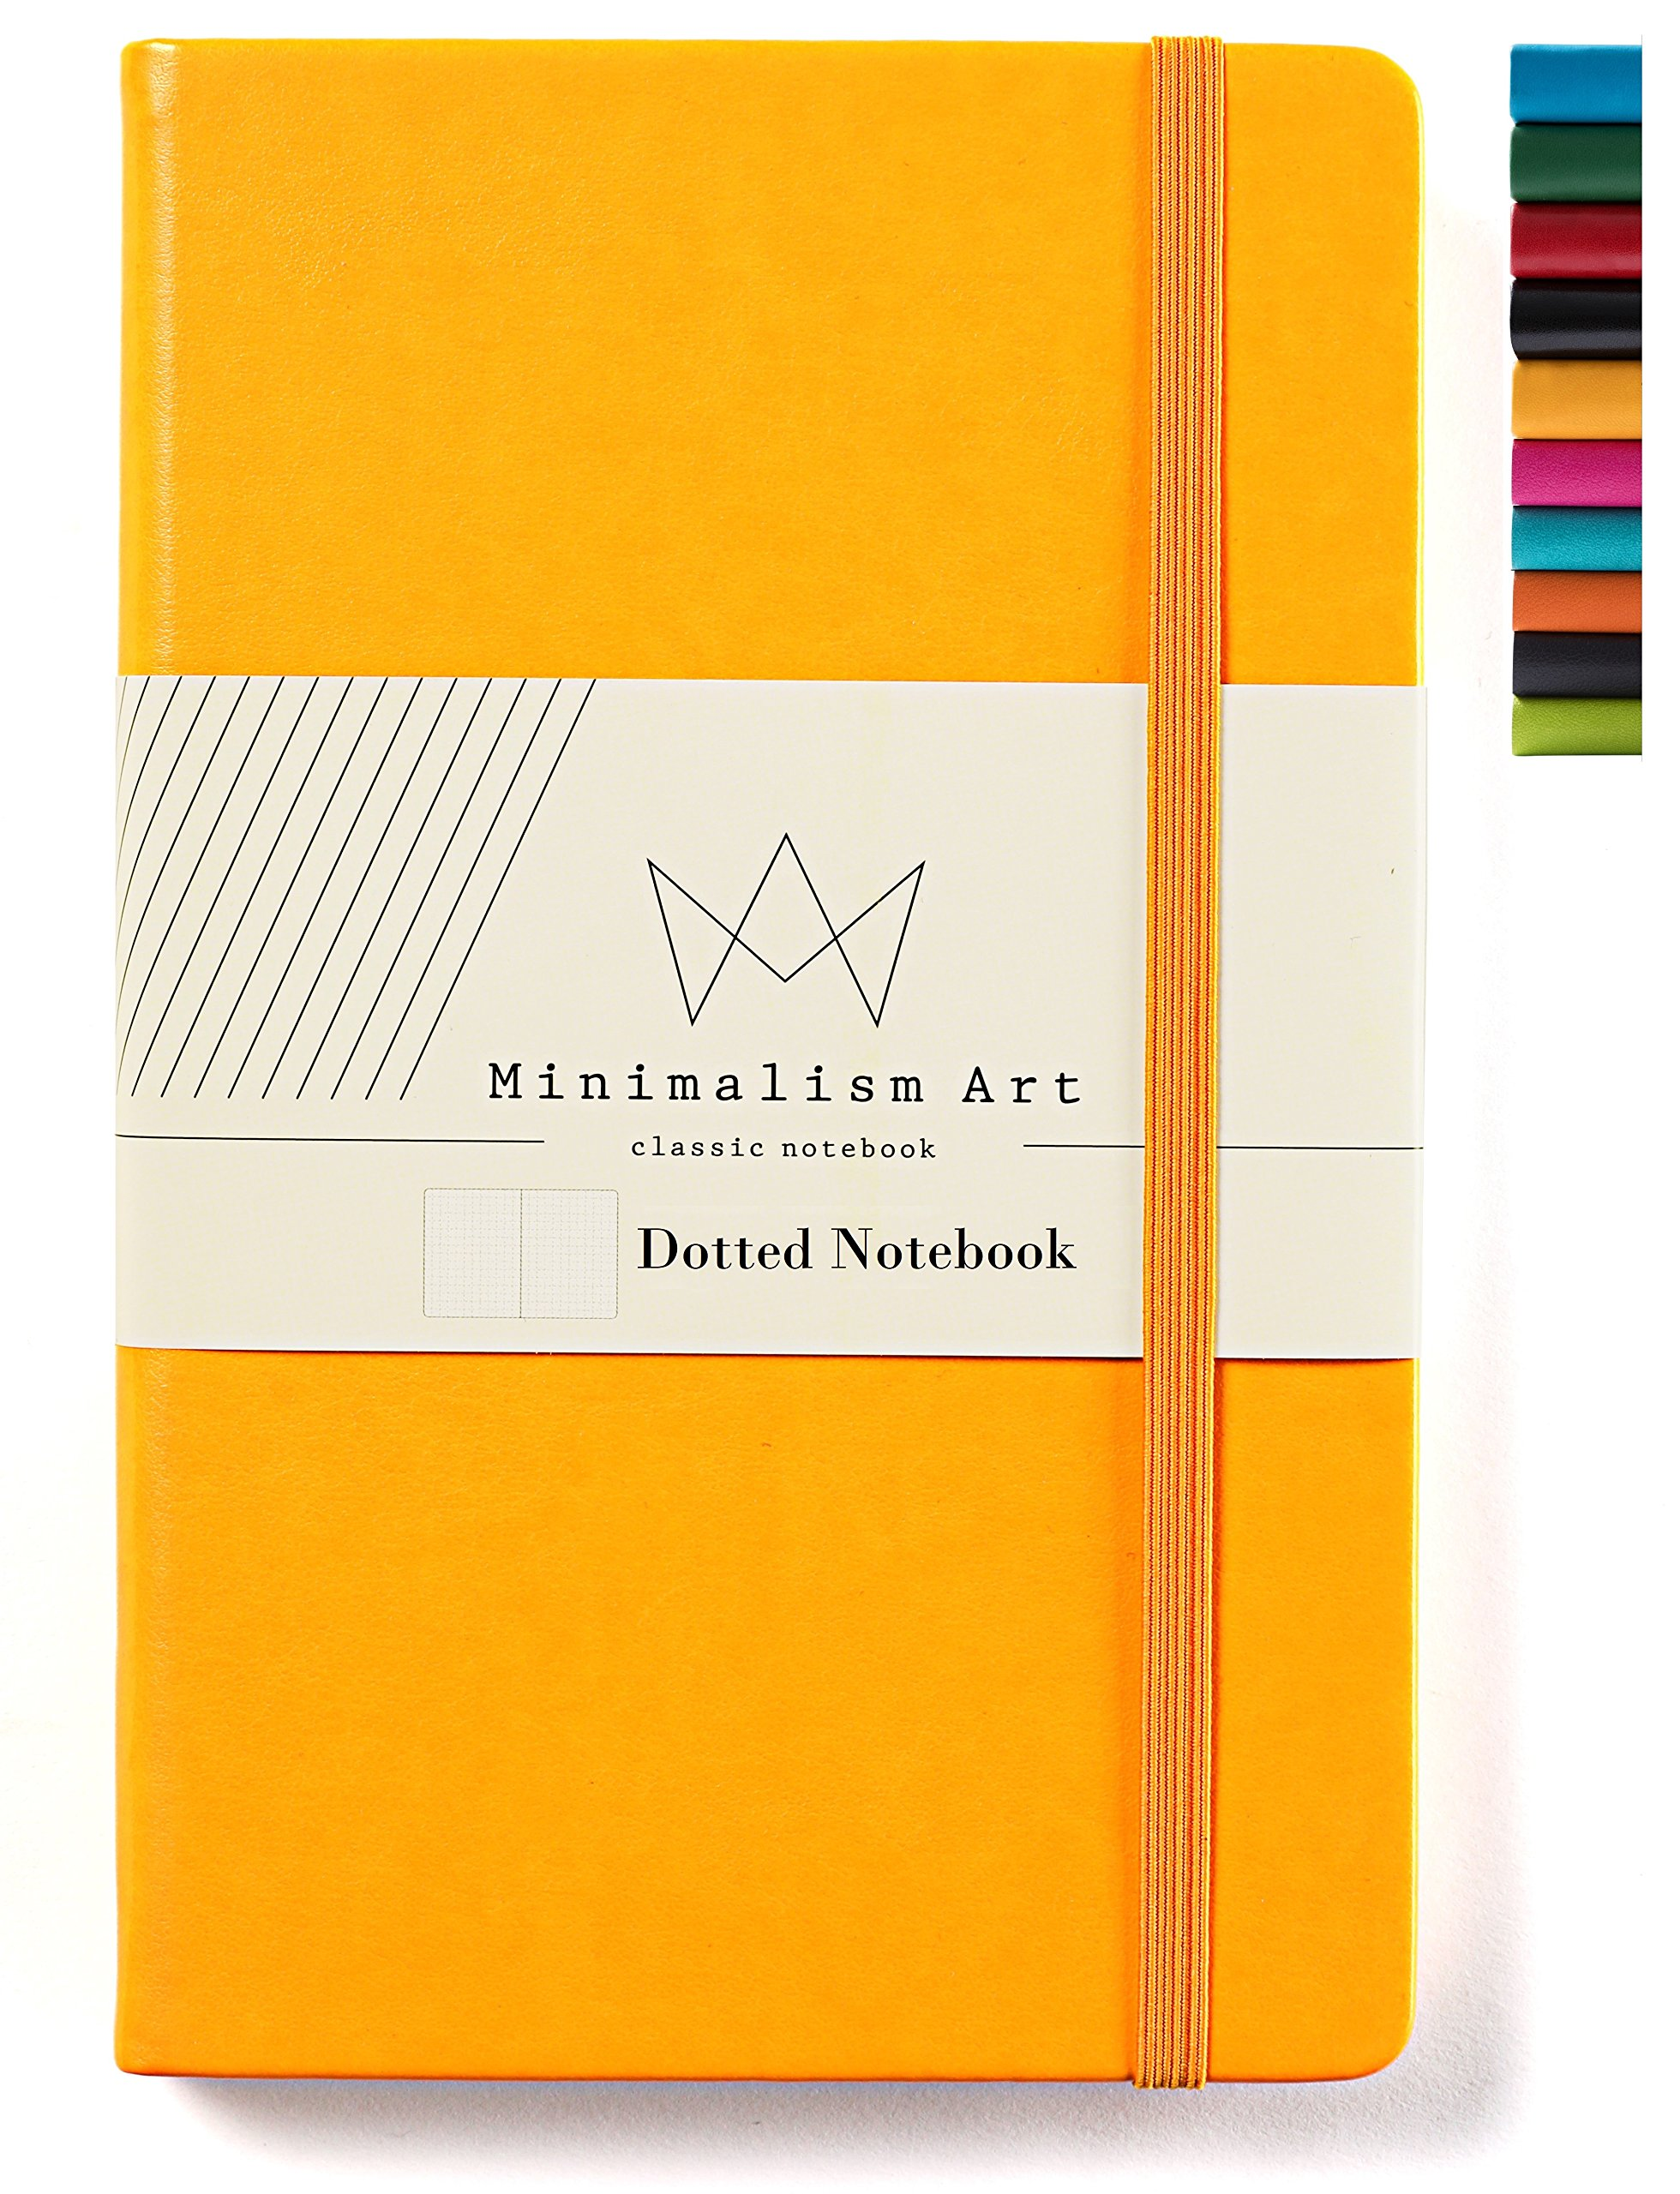 Minimalism Art | Classic Notebook Journal, Size: 5'' X 8.3'', A5, Yellow, Dotted Grid Page, 192 Pages, Hard Cover/Fine PU Leather, Inner Pocket, Quality Paper - 100gsm | Designed in San Francisco